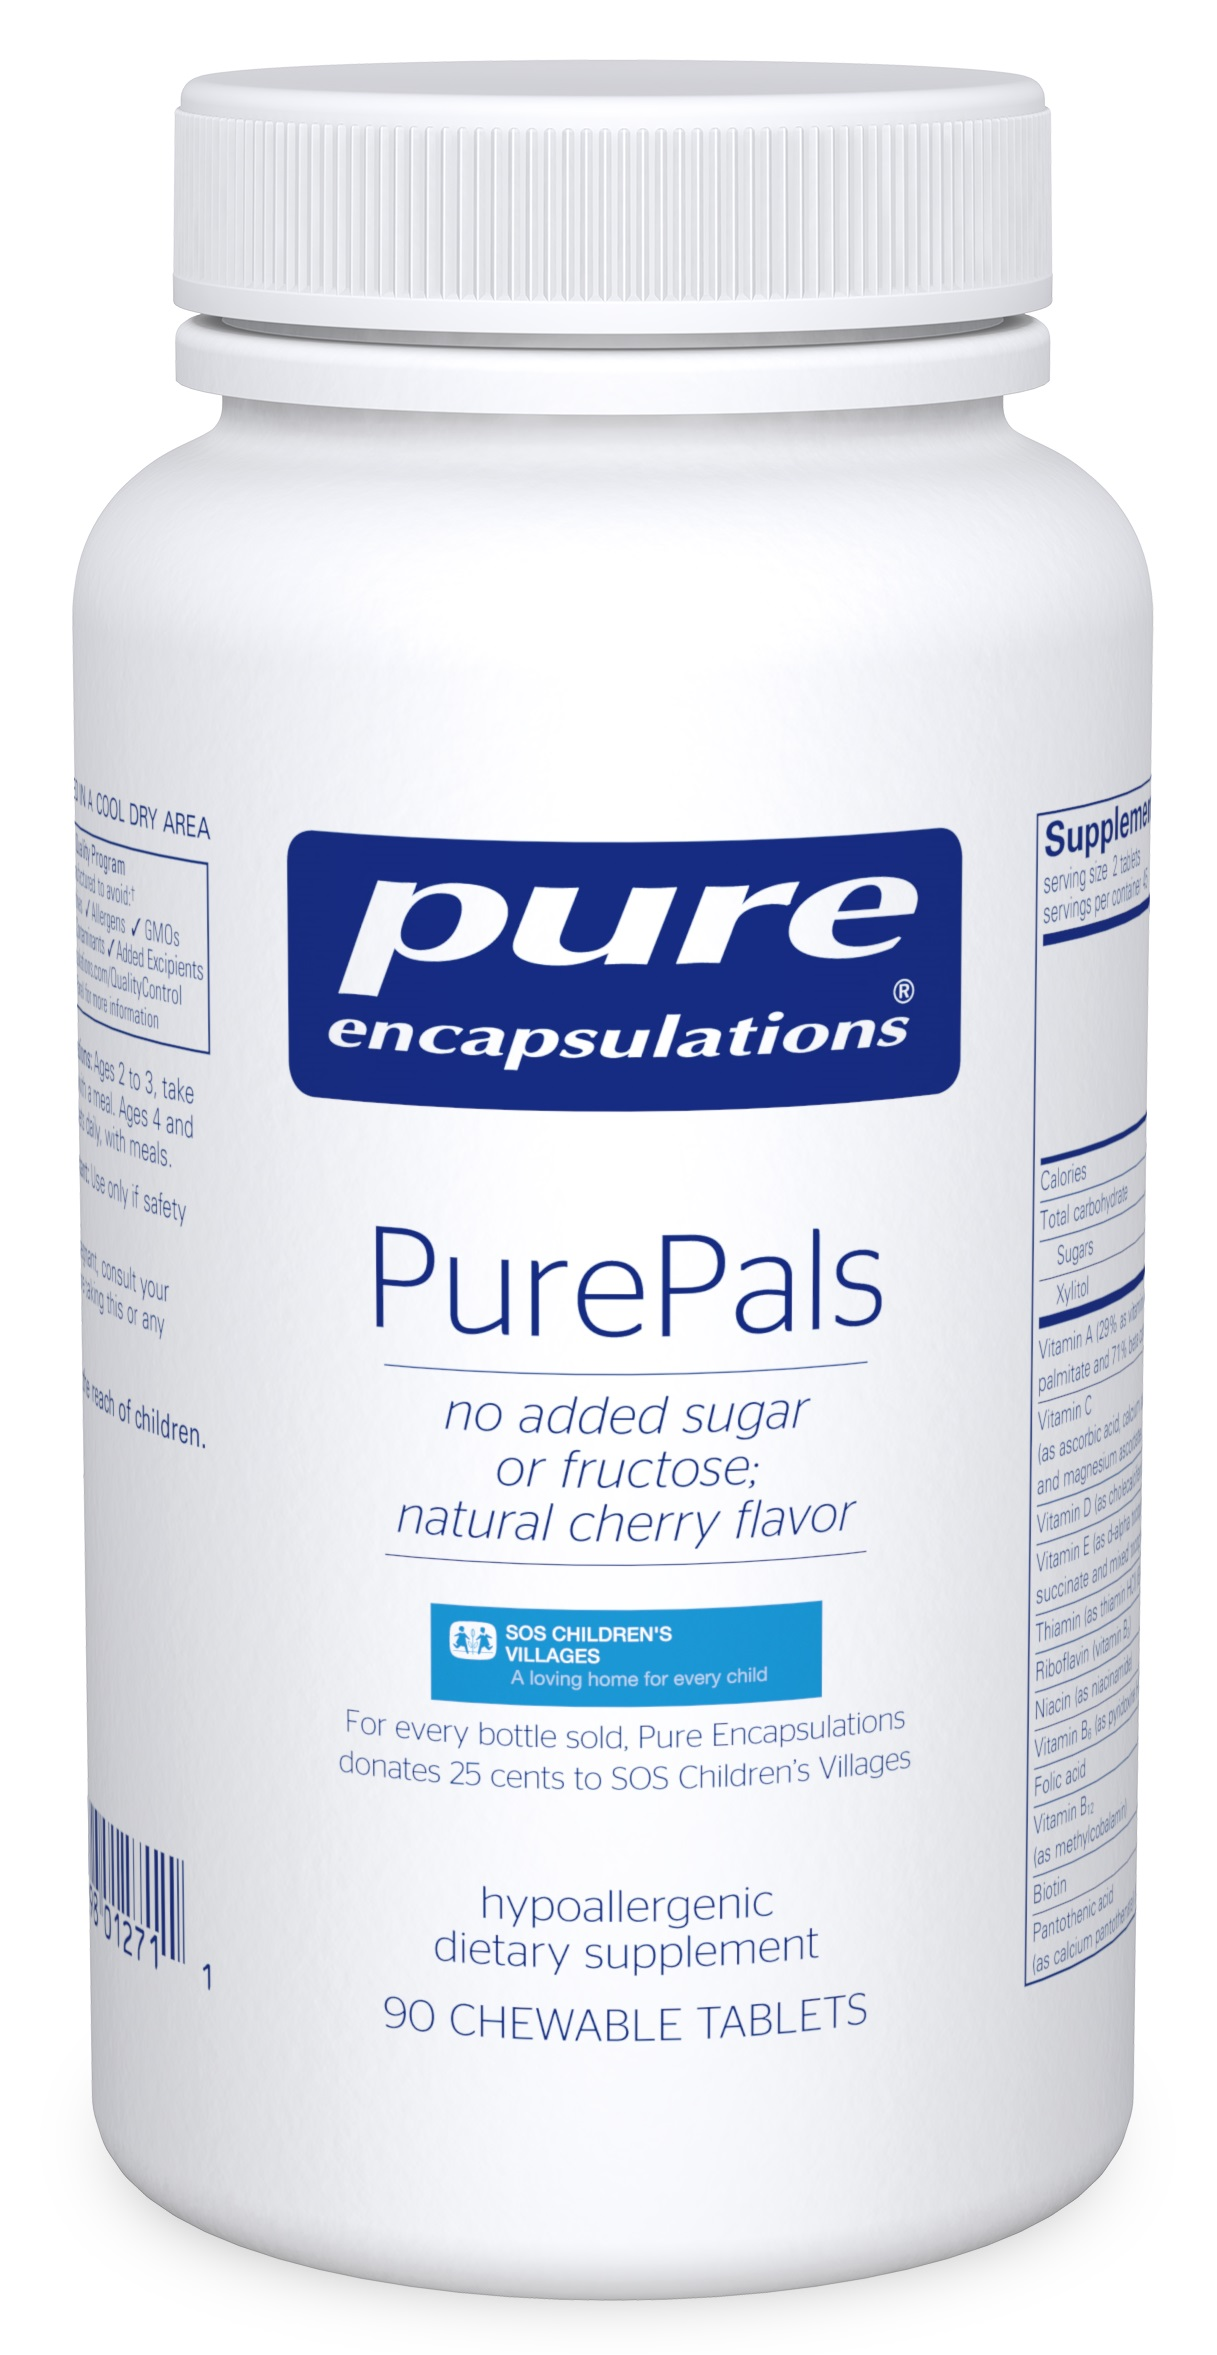 Pure Encapsulations PurePals